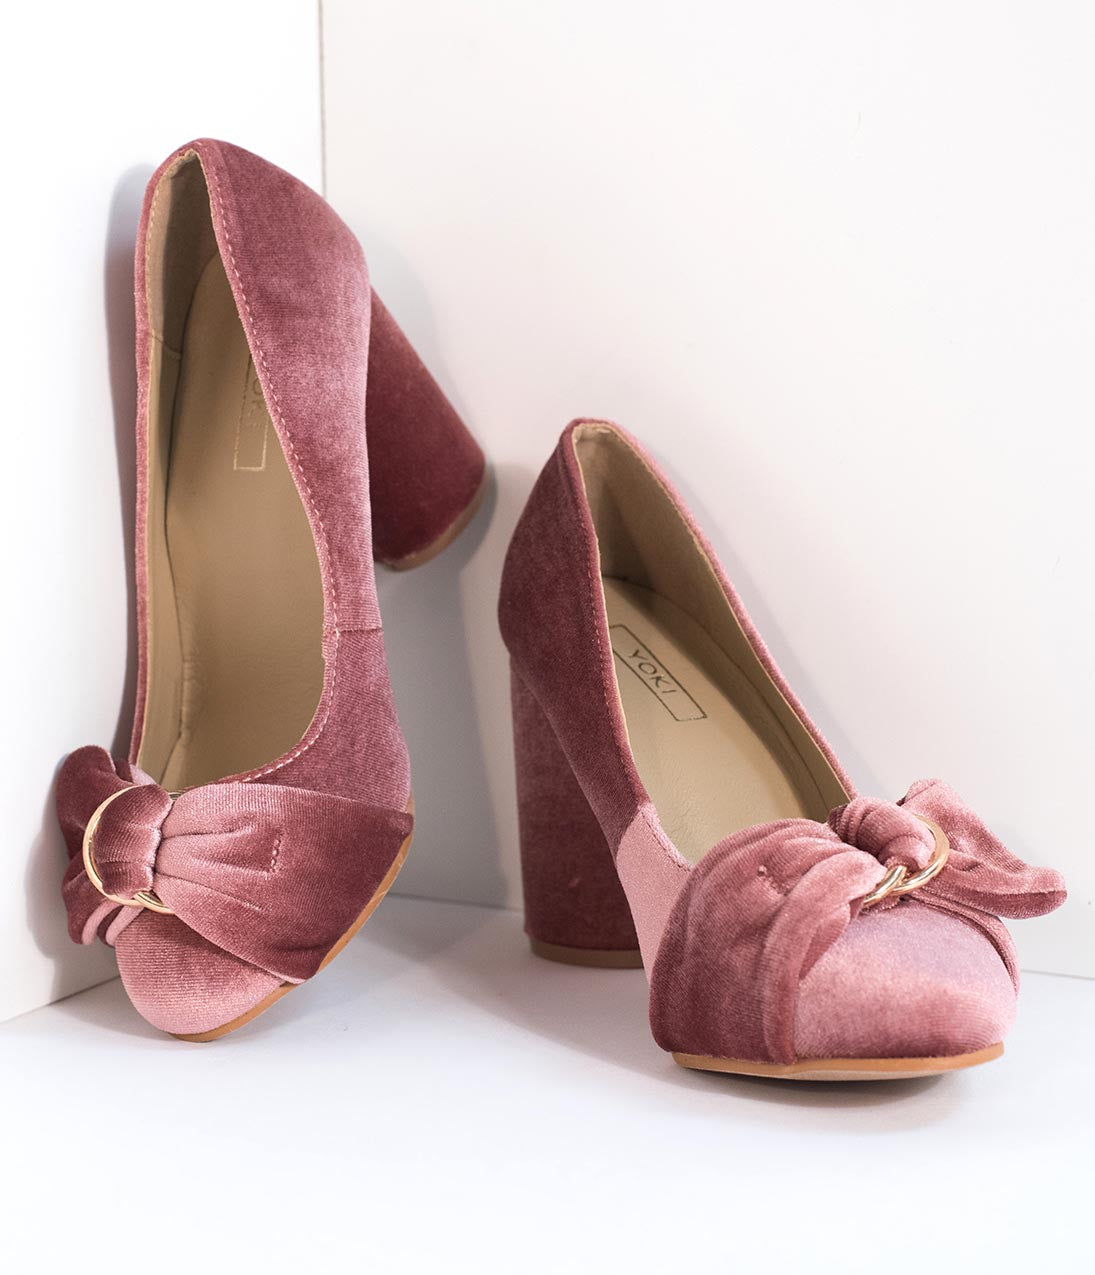 1940s Style Shoes, 40s Shoes Blush Pink Velvet Buckle Bow Closed Toe Heels $38.00 AT vintagedancer.com